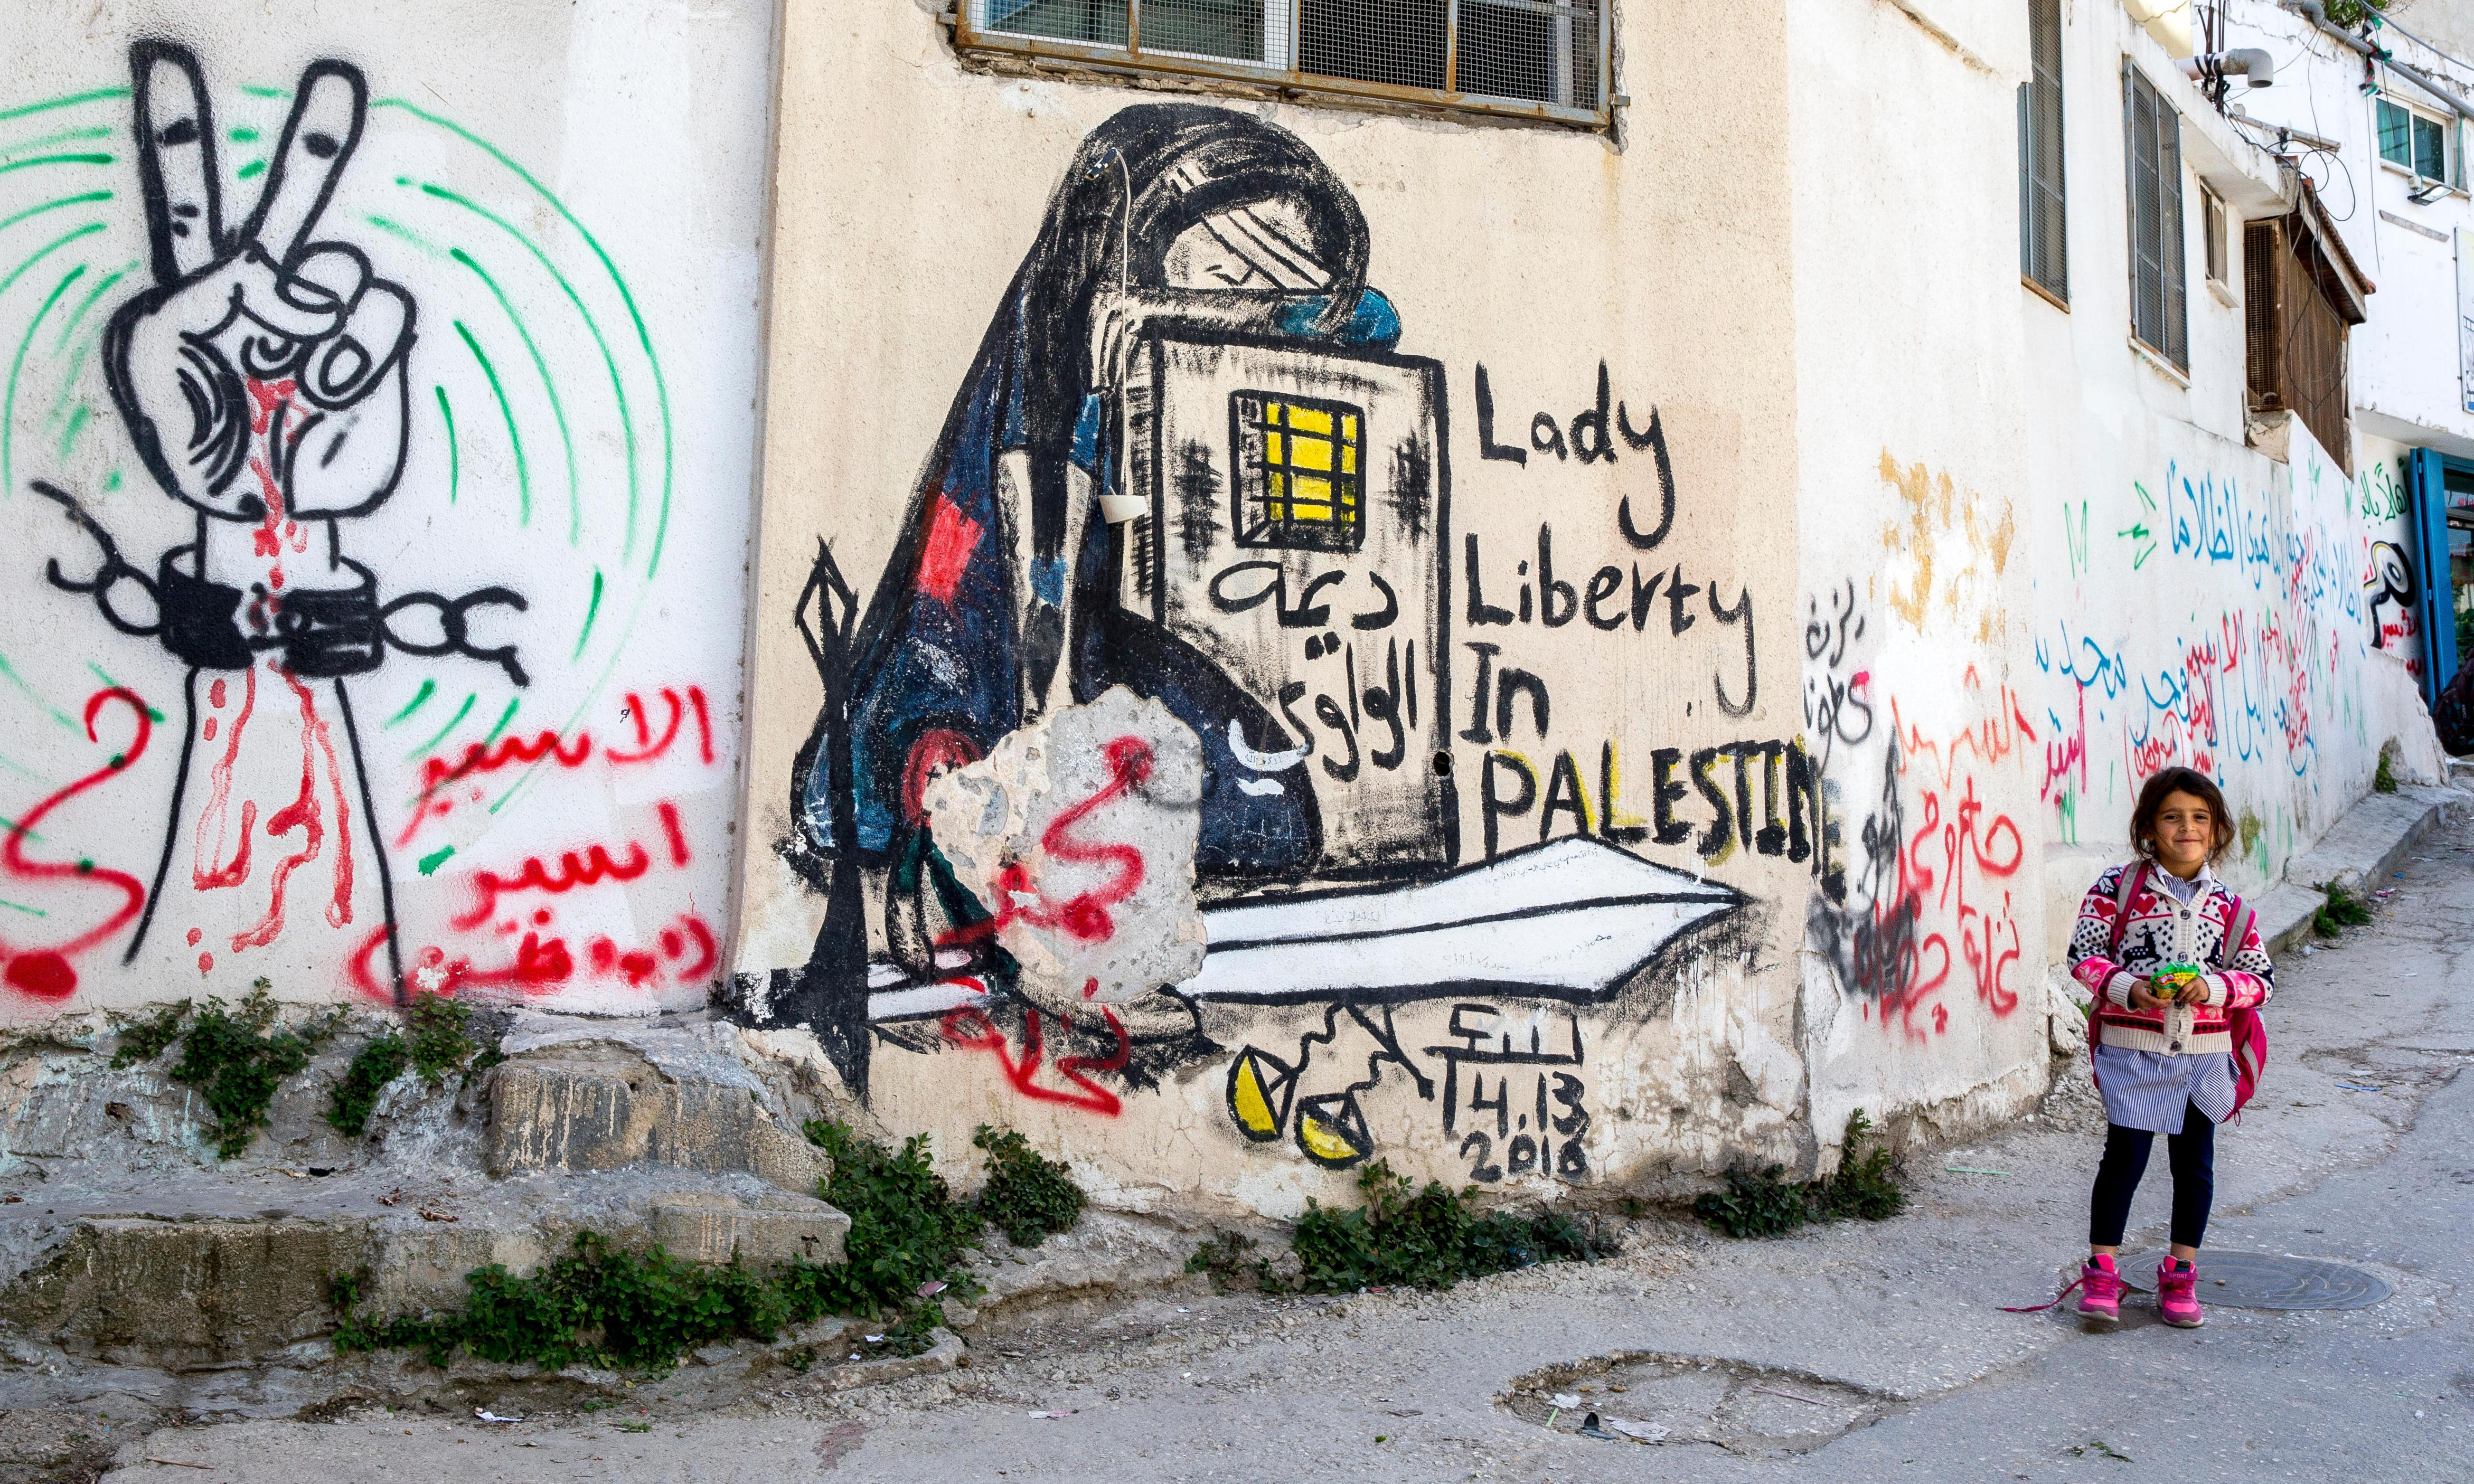 'Look where we've got to – defeated and dominated': my generation's failure to liberate Palestine